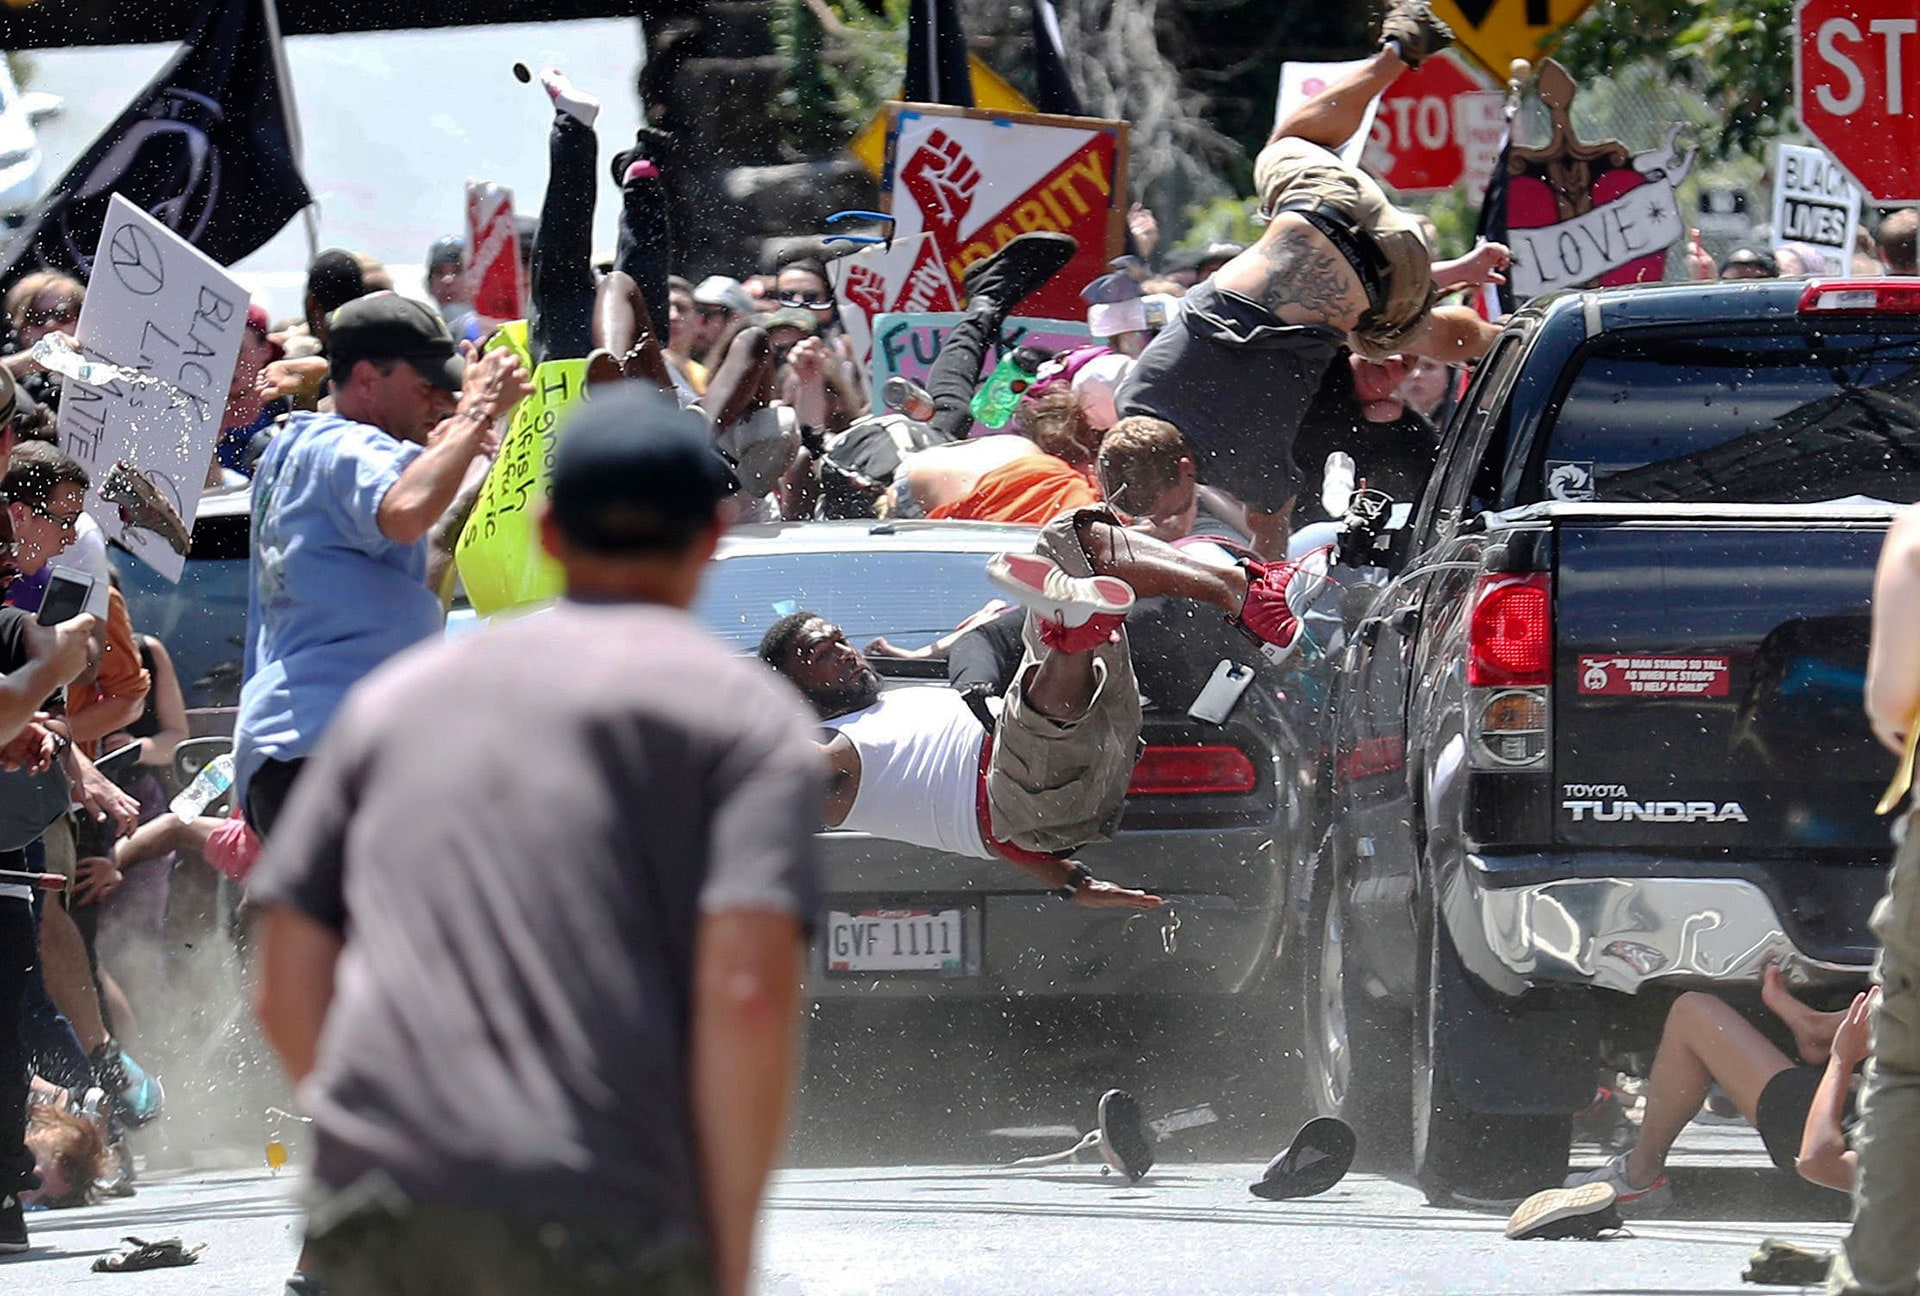 A vehicle drives into a group of counterprotesters demonstrating against a white nationalist